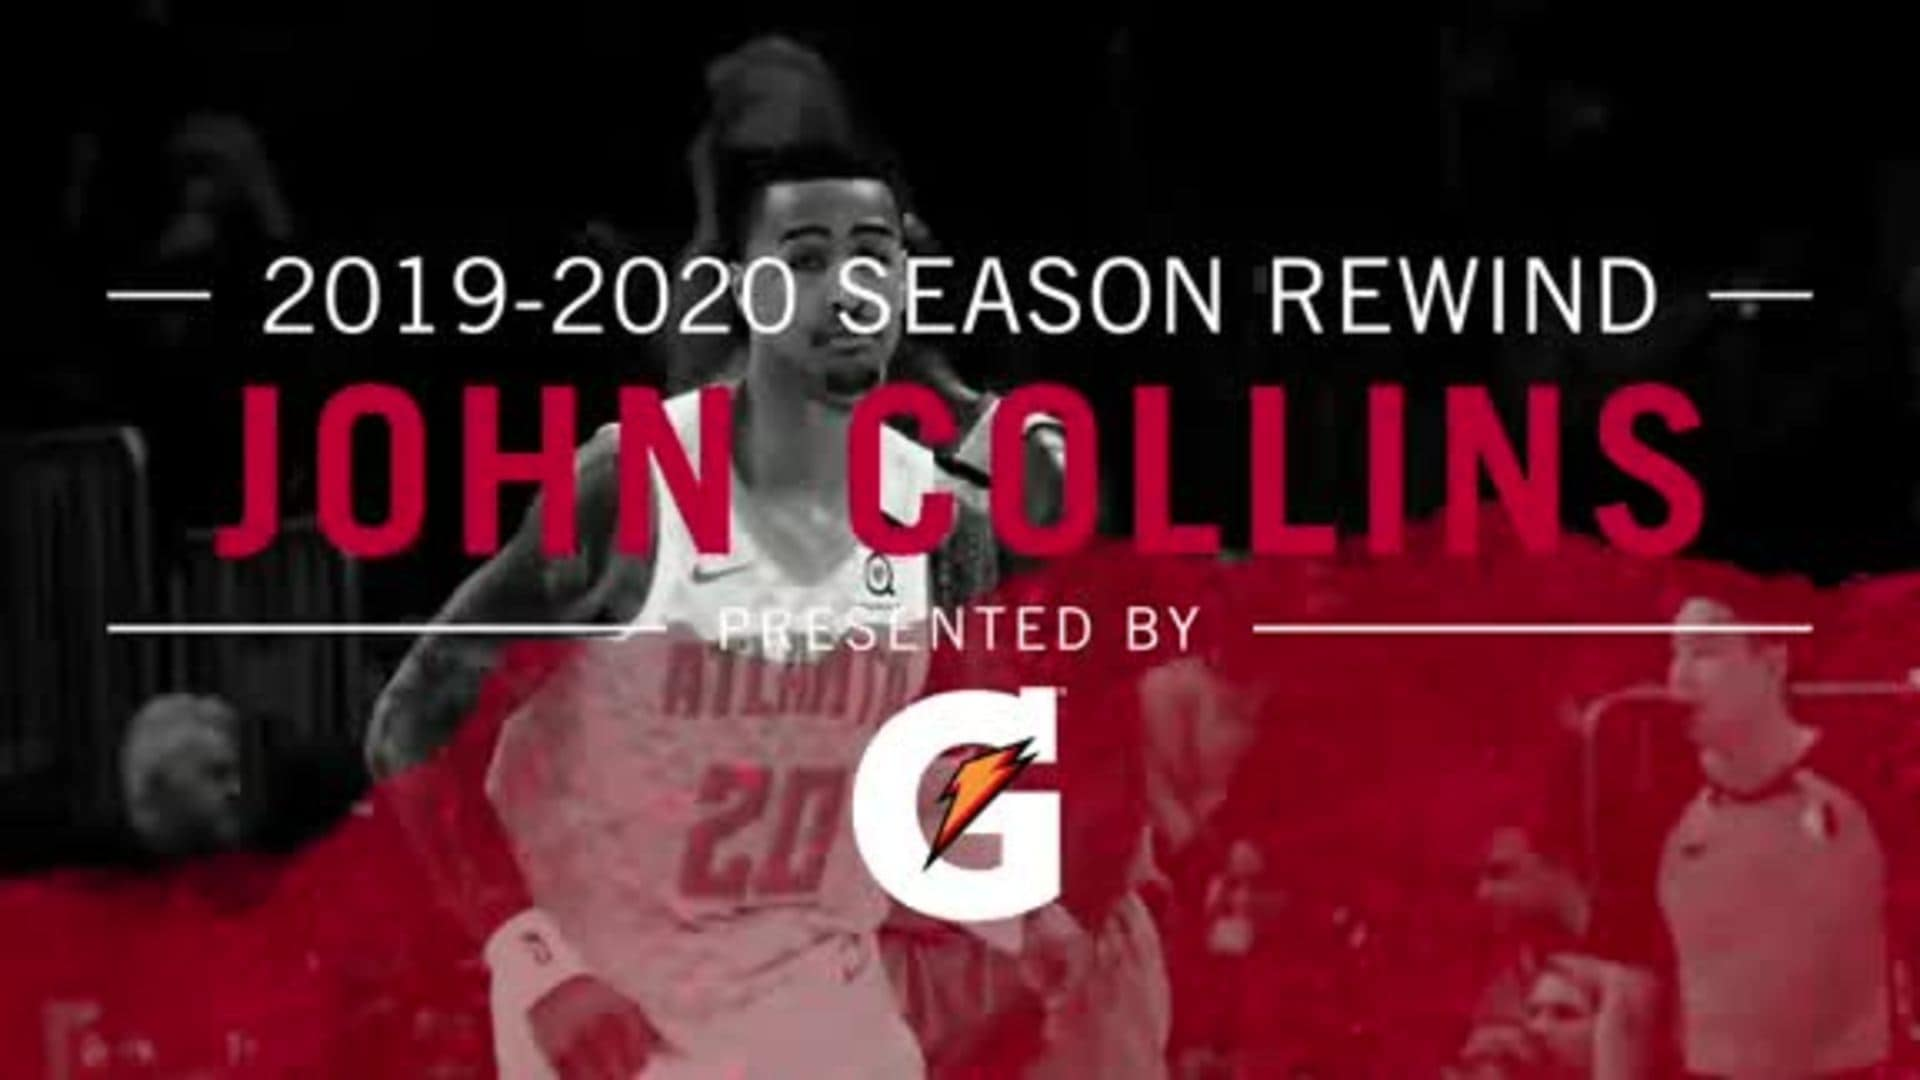 19-20 Season Rewind Presented by Gatorade: John Collins Top Plays